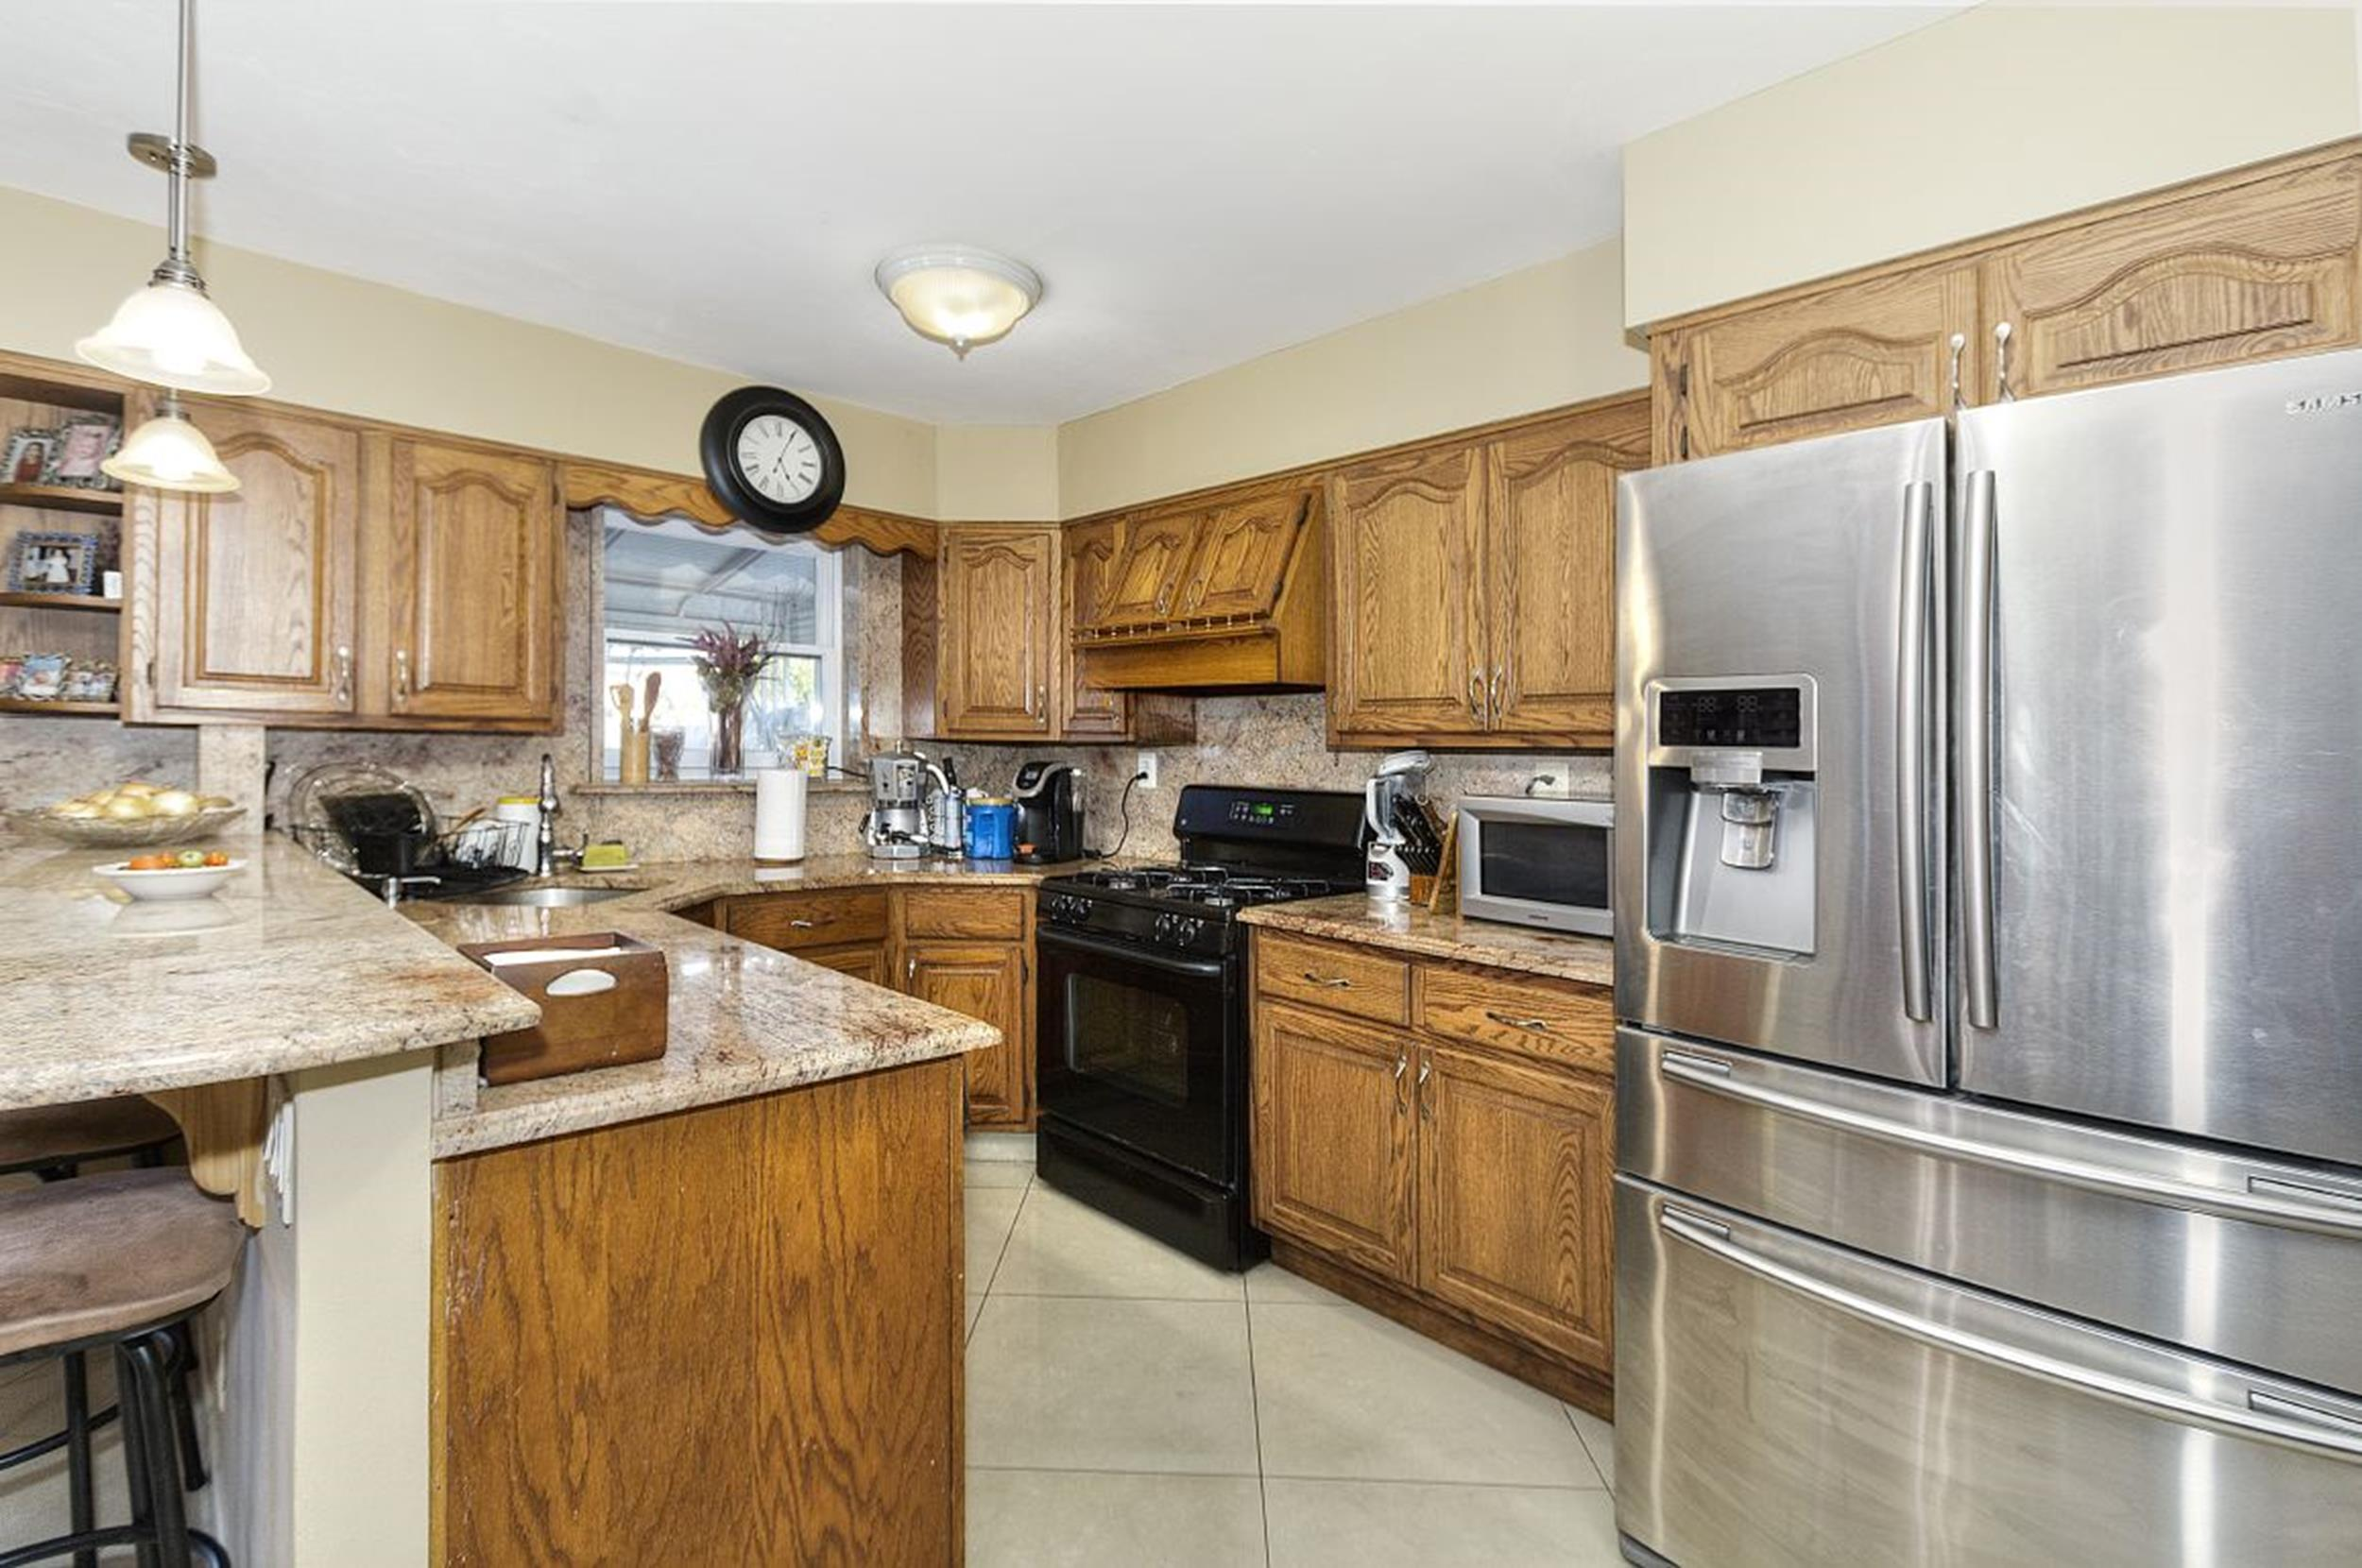 Kitchen cabinets 65th street brooklyn - Kitchen Cabinets 65th Street Brooklyn 11